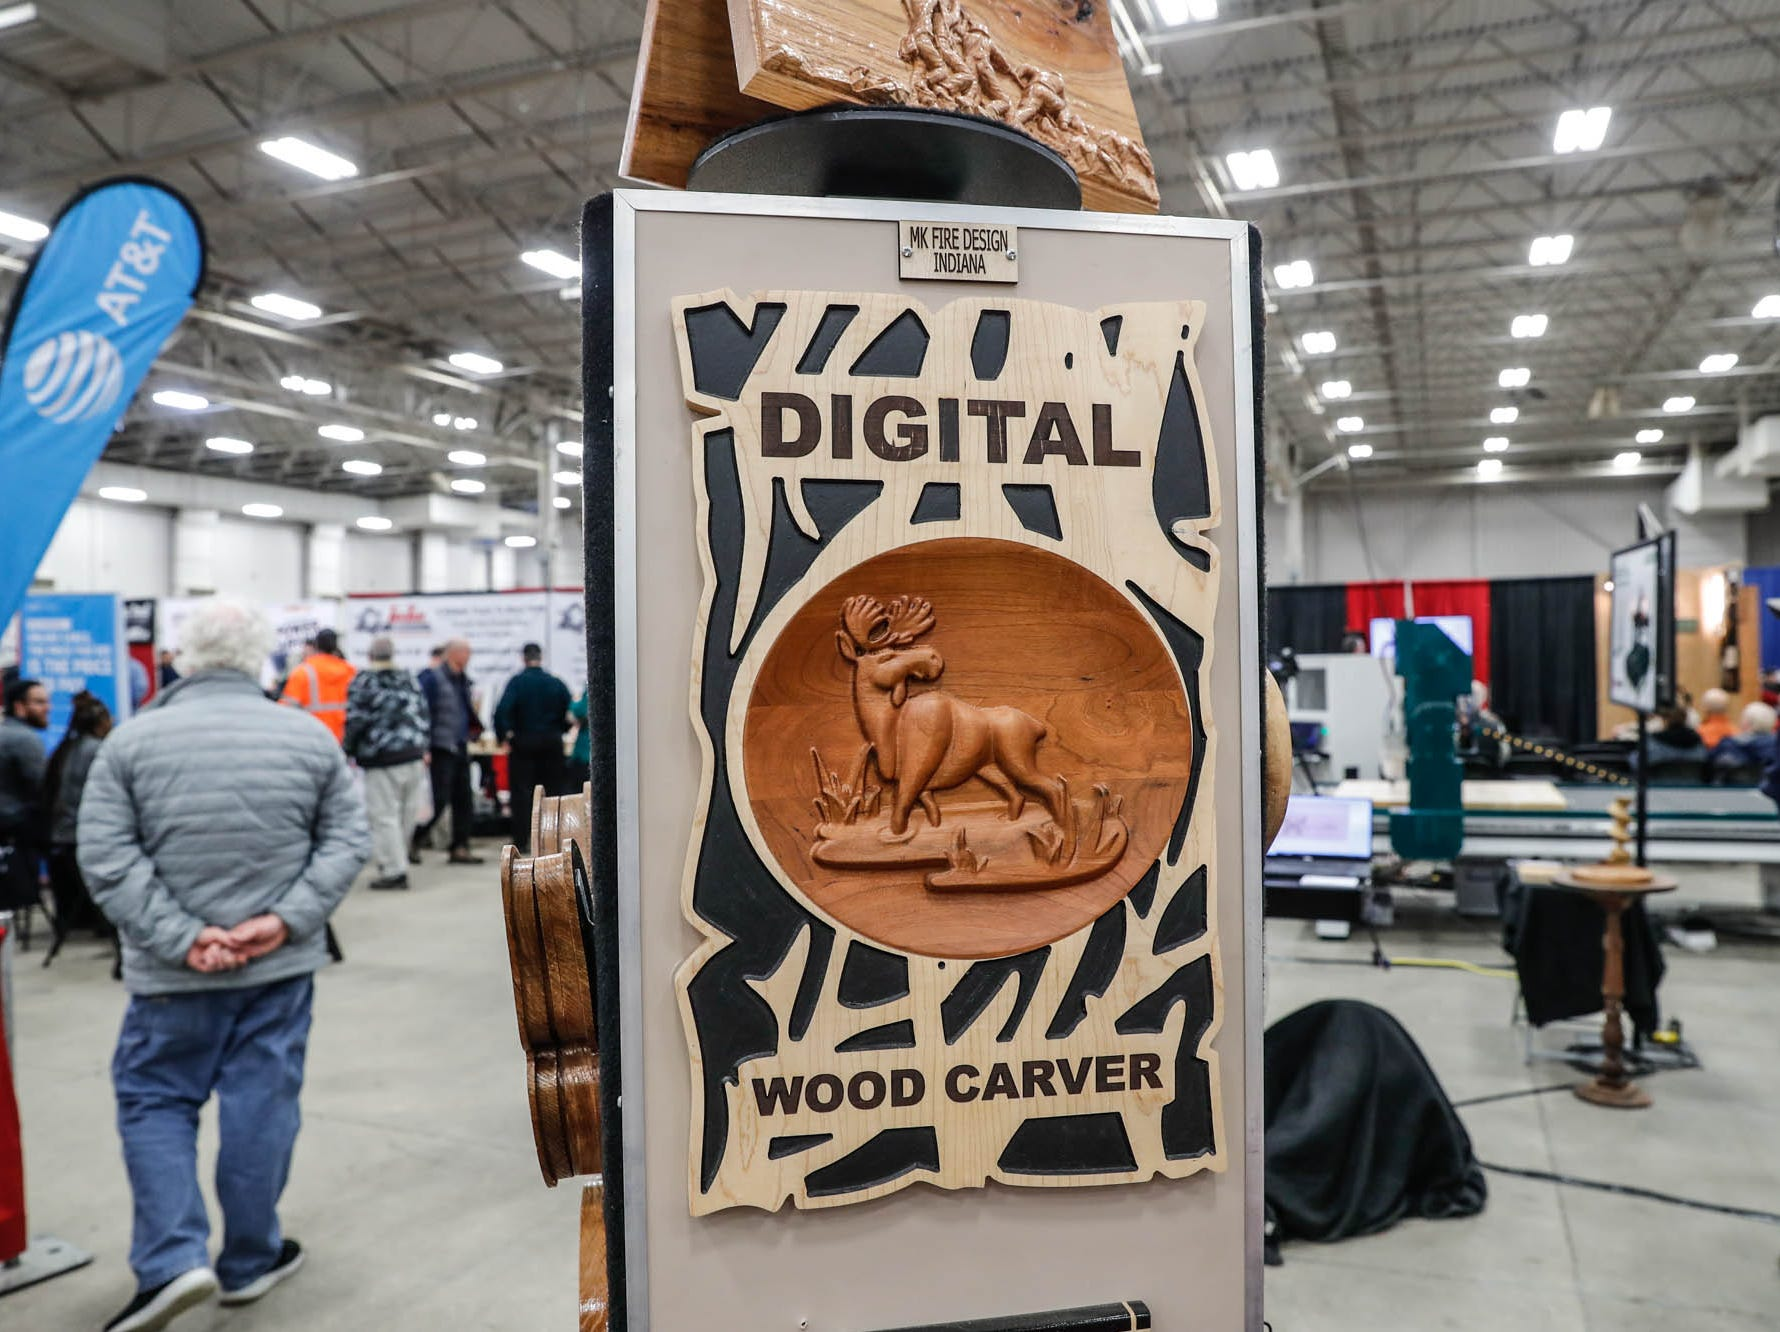 Digital wood carvings hand on display at the Digital Wood Carving booth during a Wood Working Show at the Indiana State Fairgrounds in Indianapolis on Sunday, Feb. 3, 2019.